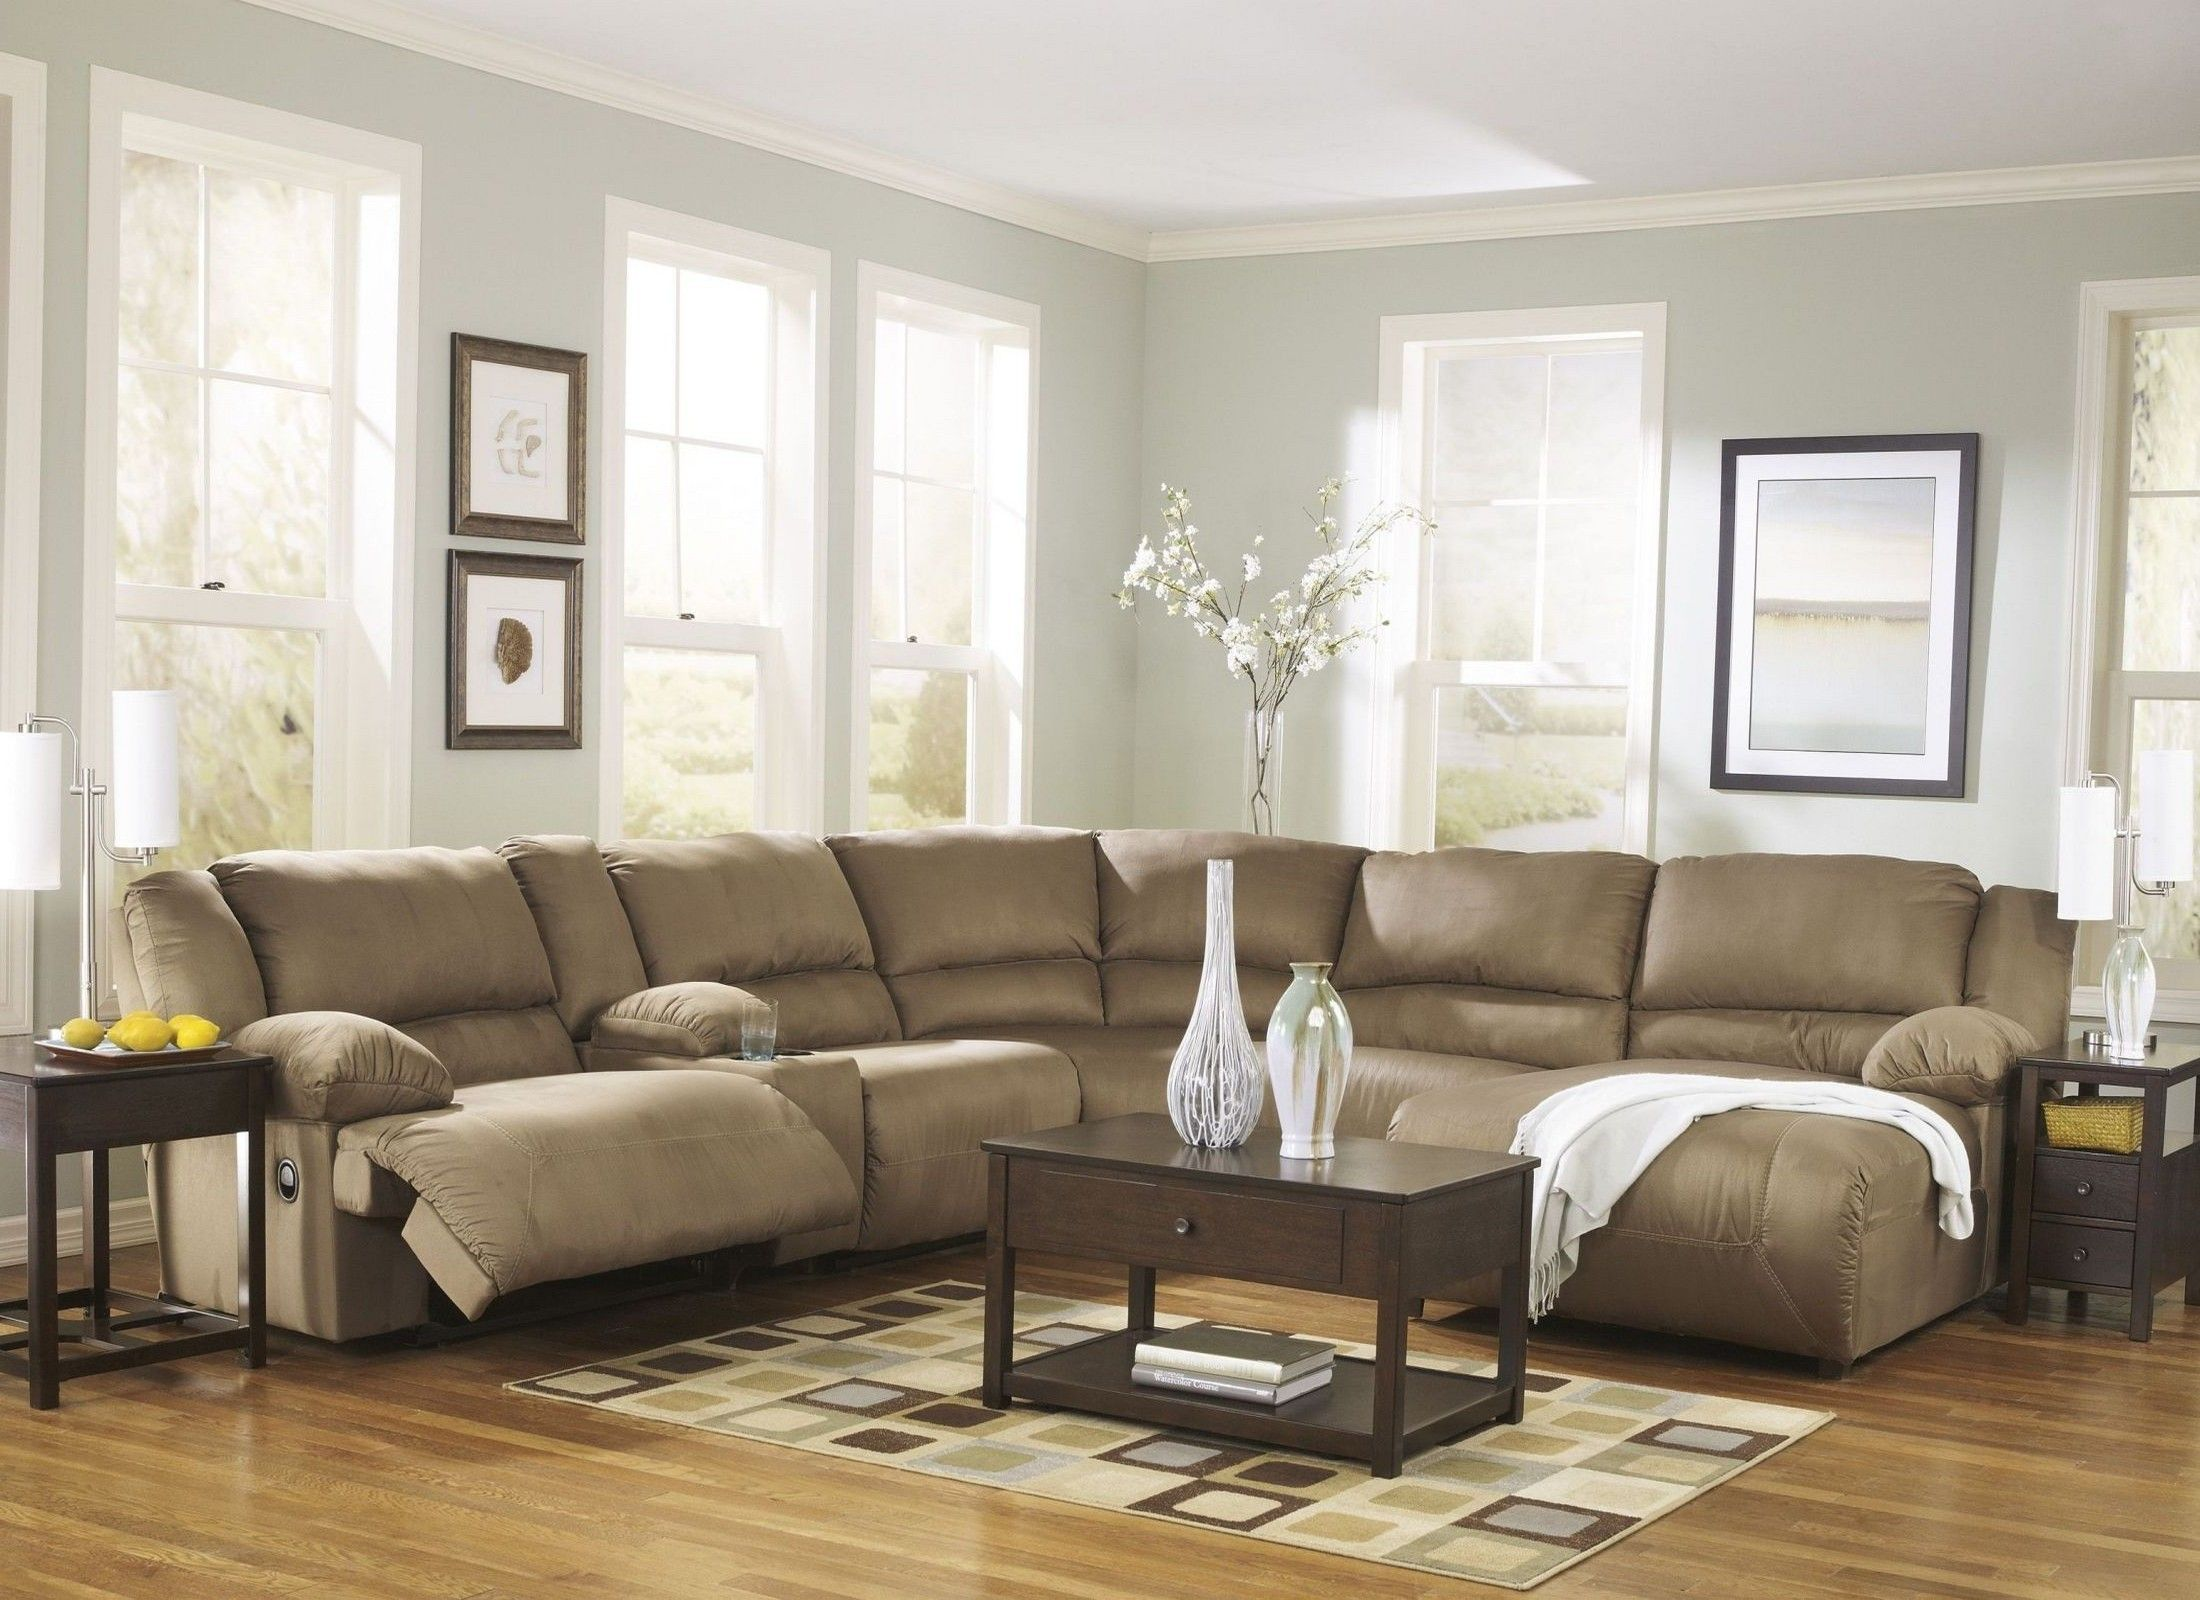 Hogan Mocha Right Chaise Reclining Sectional from Ashley ...